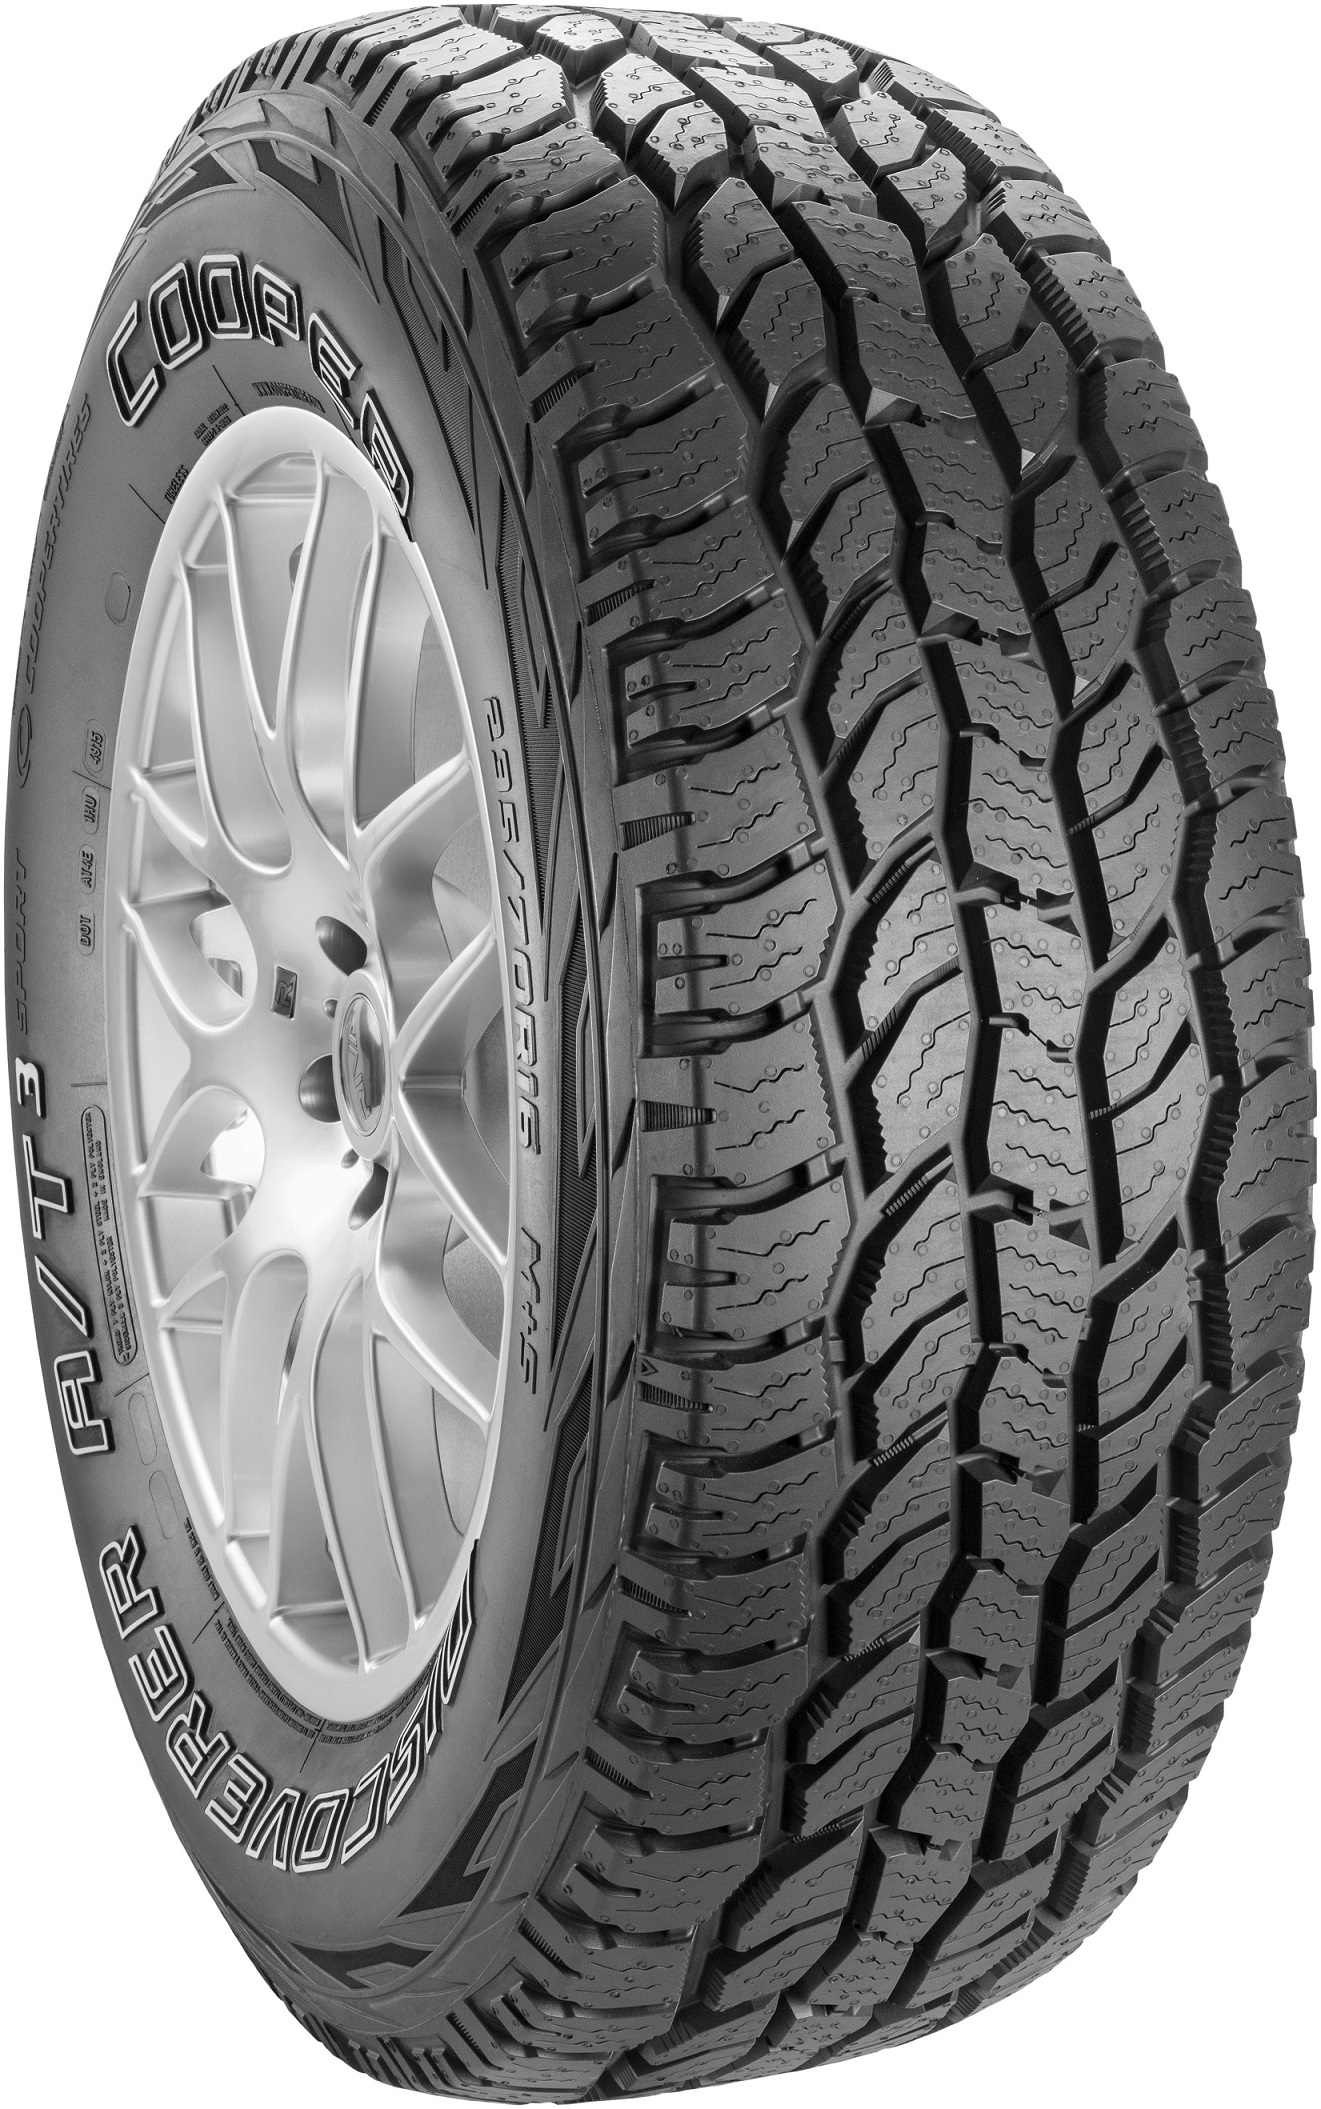 Gomme Nuove Cooper Tyres 205/80 R16 104T DISCOVERER A/T3 SPORT XL pneumatici nuovi Estivo